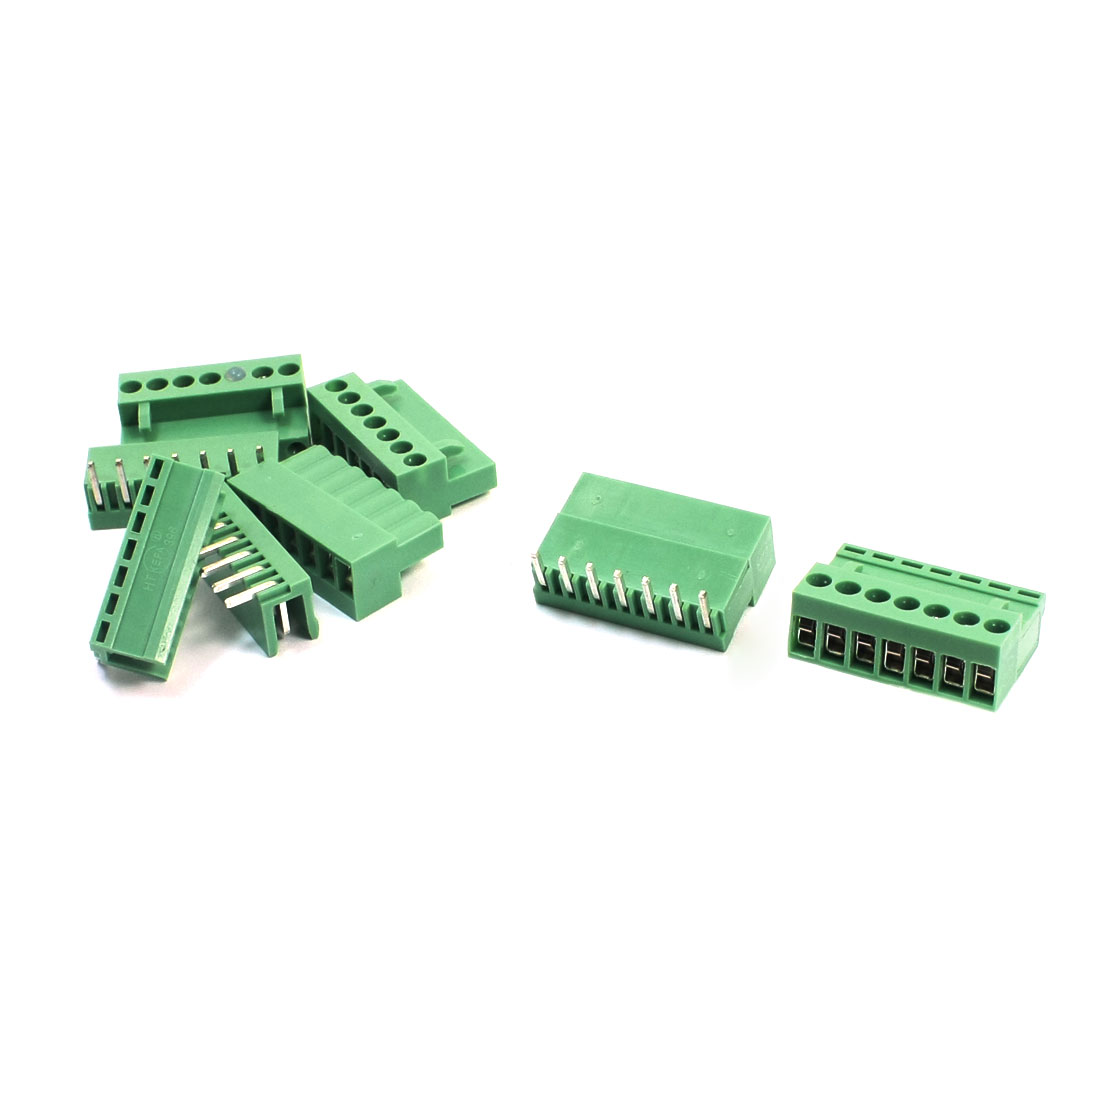 5Pcs AC300V 10A 3.96mm Pitch 7Pin Through Hole Pluggable Type PCB Screw Terminal Barrier Block Connector for 14-26AWG Wire